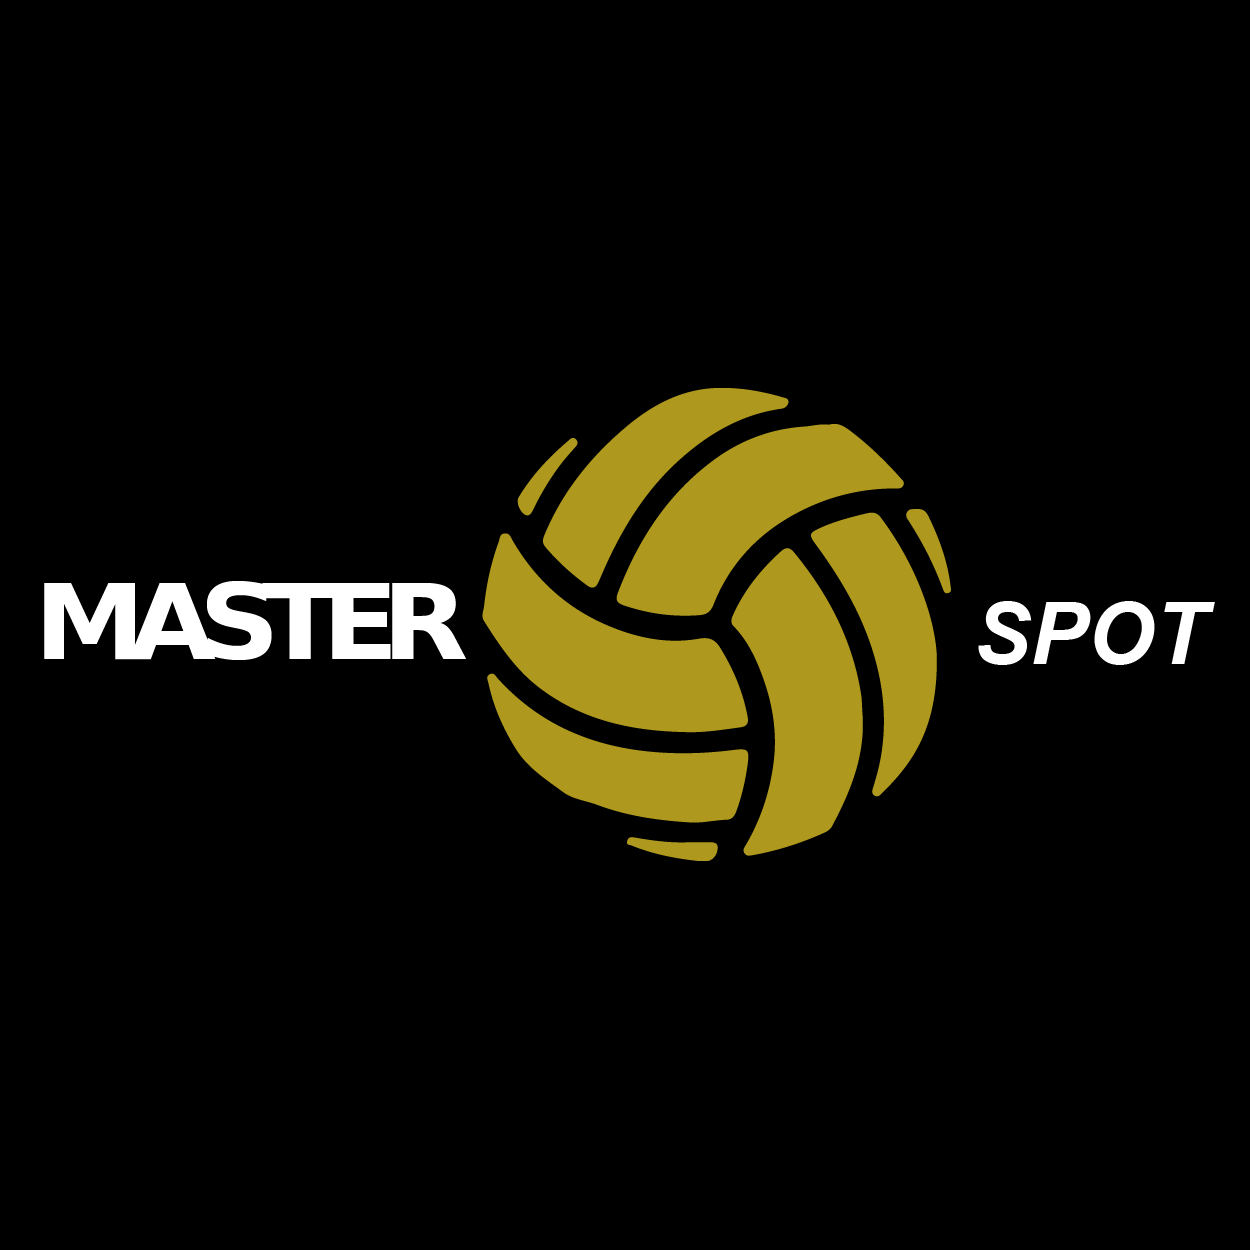 logo master spot volley